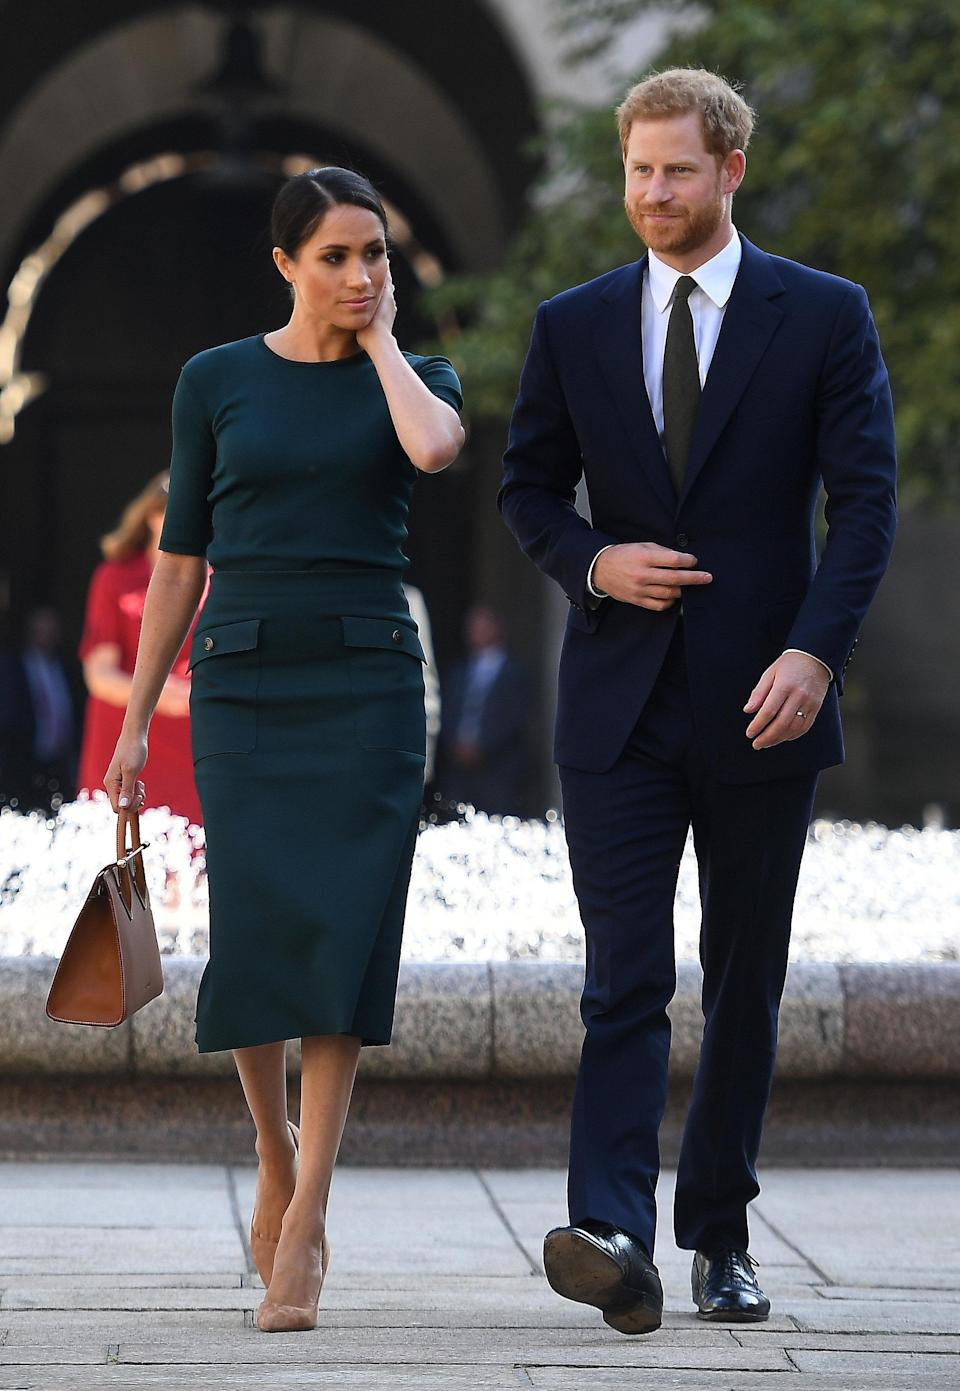 Outfit 2: Givenchy was the designer selected for Meghan's second outfit [Photo: PA]